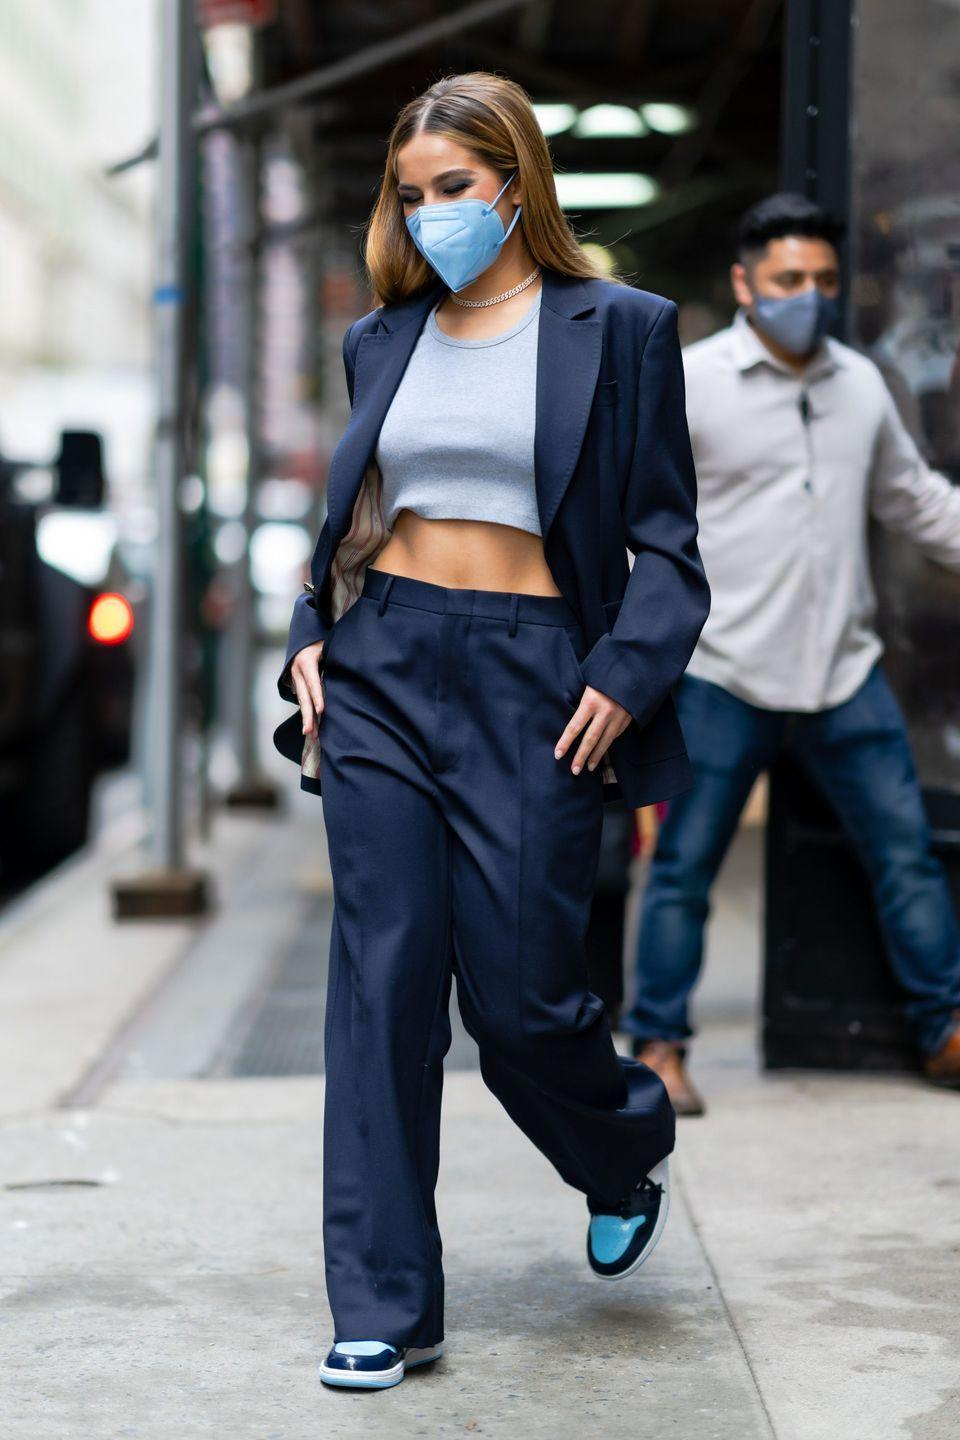 <p>No offence, but a navy blue suit really could easily look mom as hell. But with a cropped tank and sneakers it reads perfectly laid-back. </p>